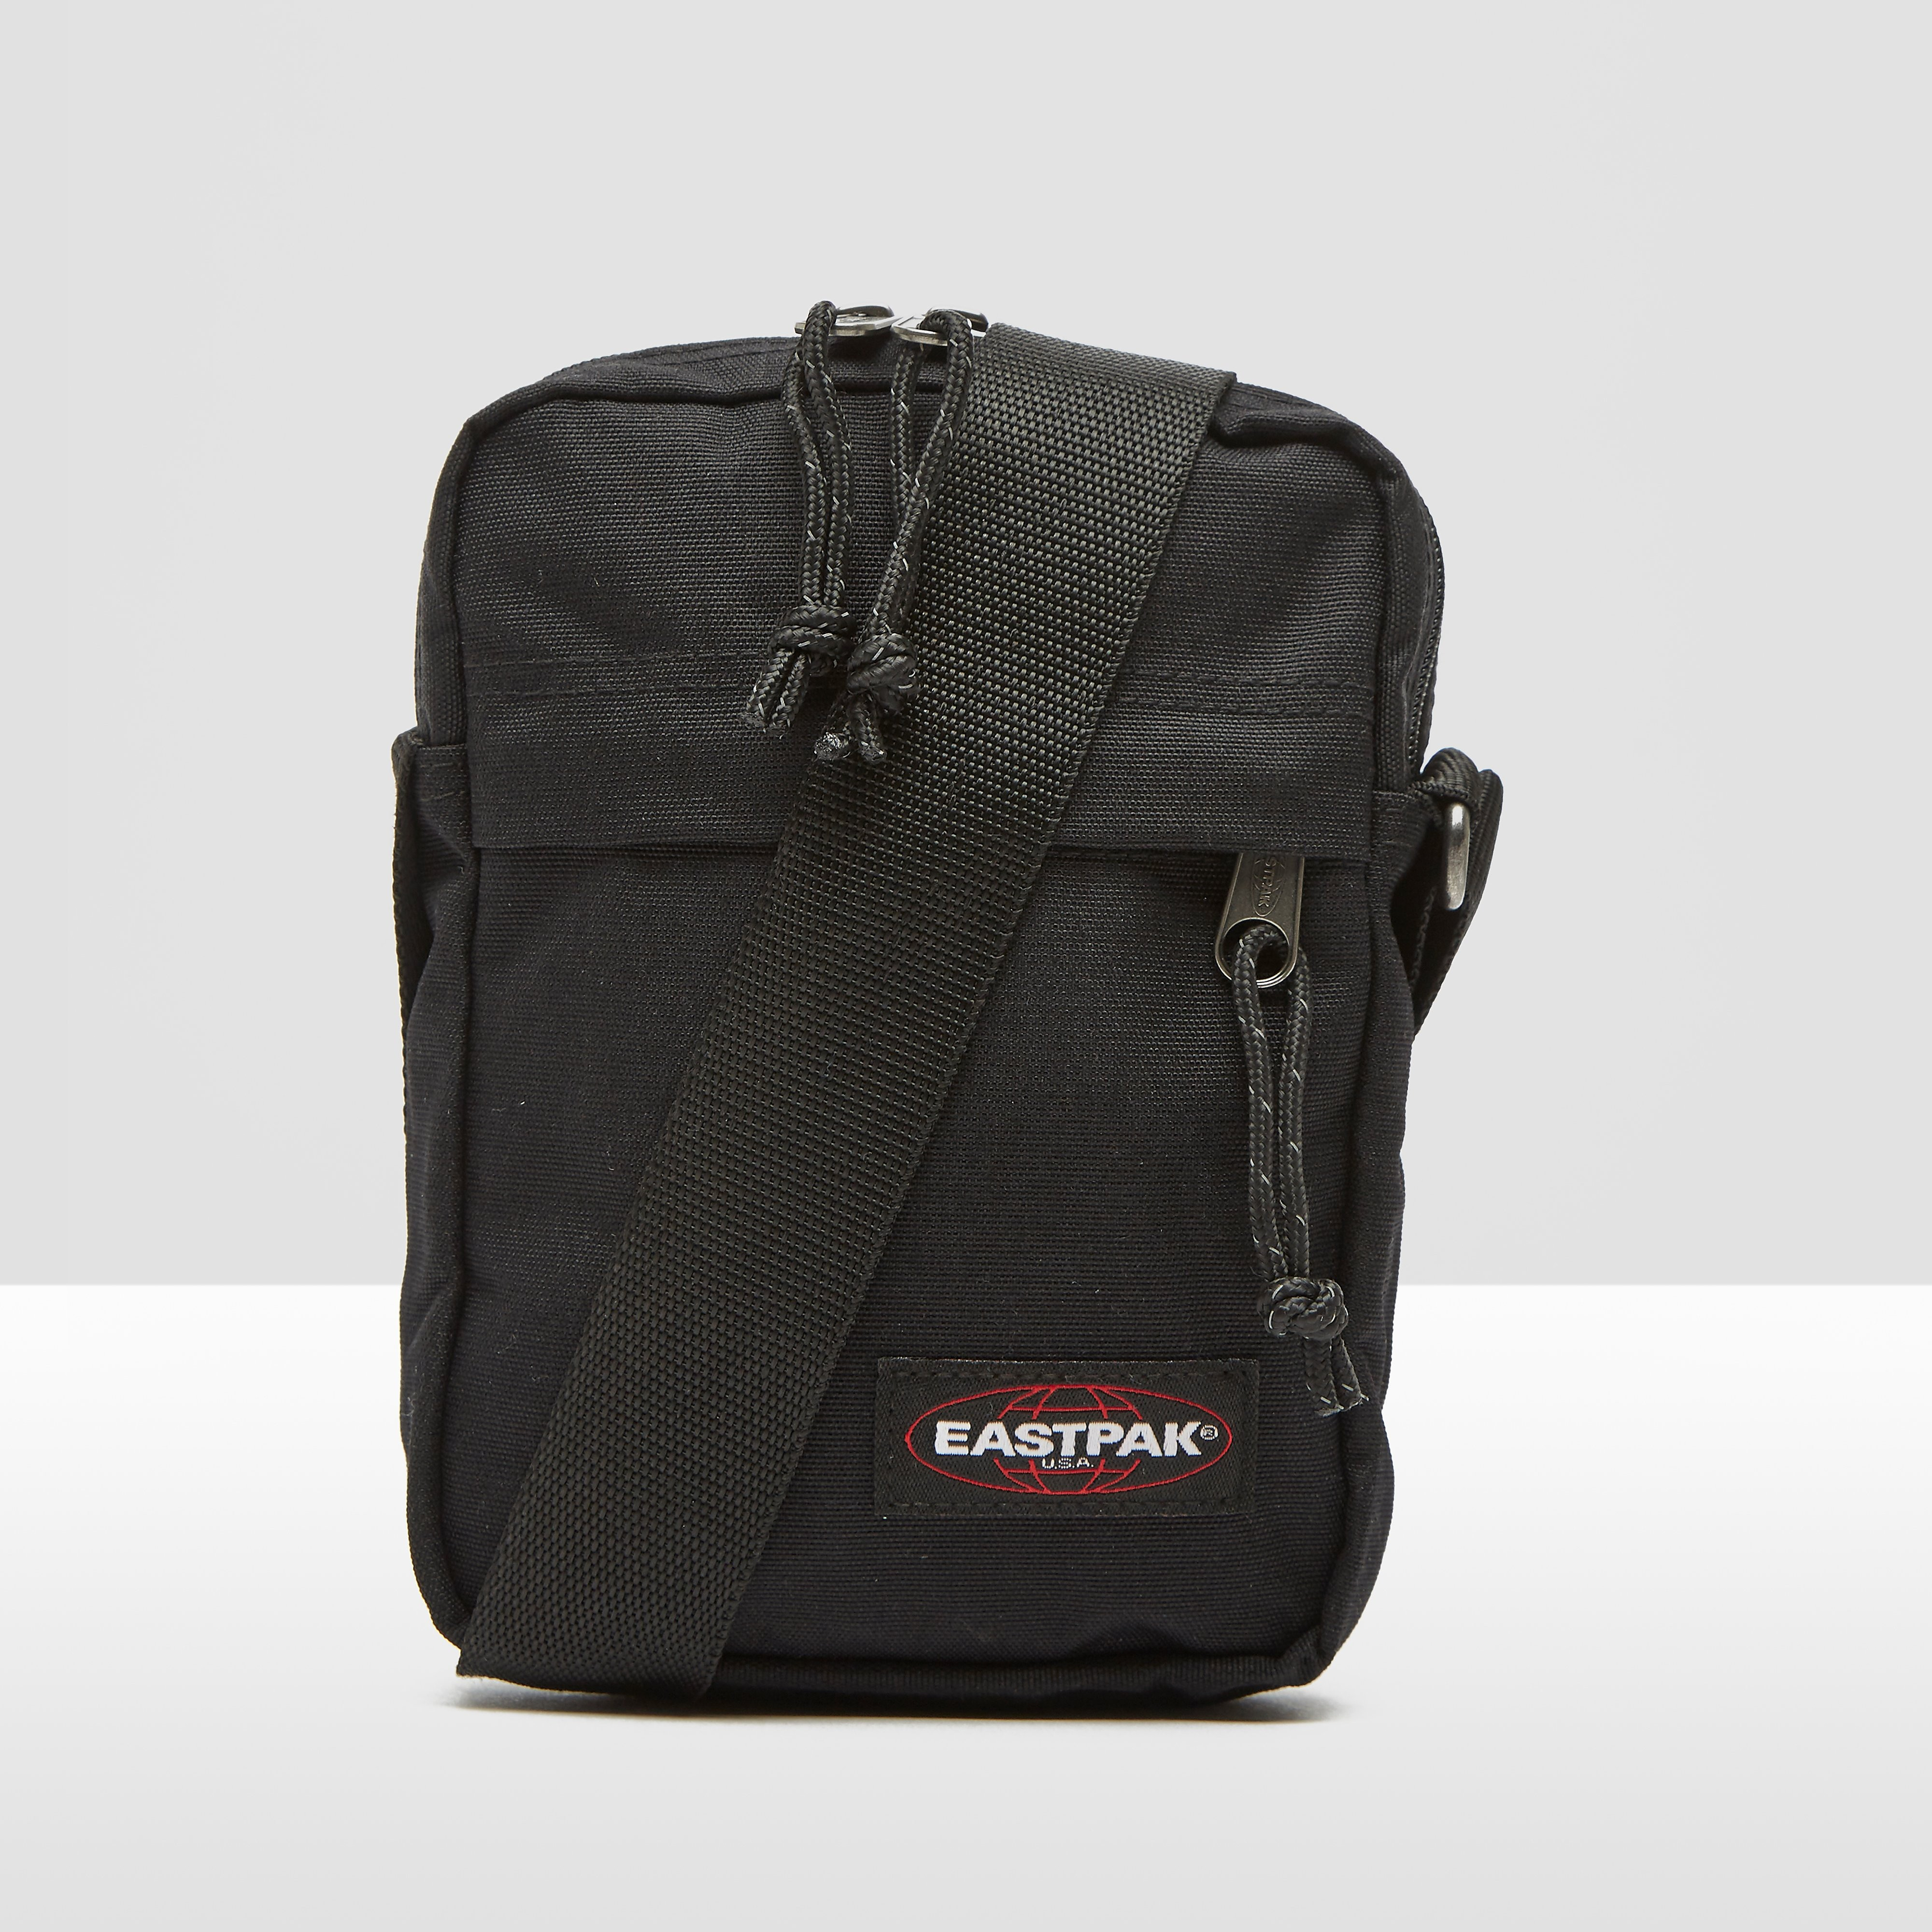 EASTPAK THE ONE SCHOUDERTAS ZWART